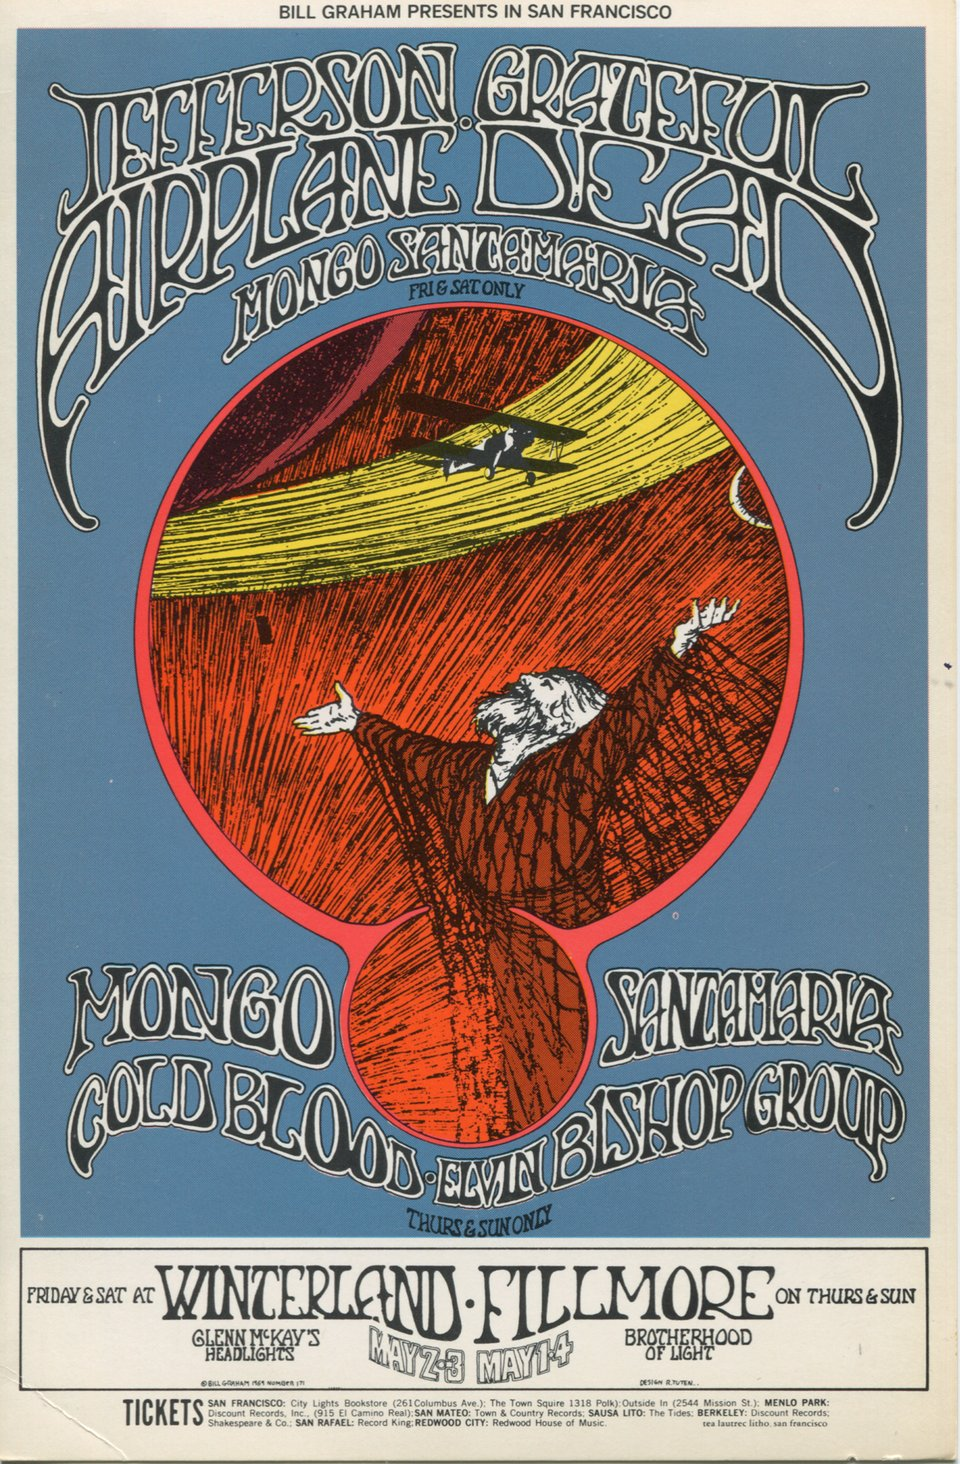 Cold Blood, Elvin Bishop Group, Grateful Dead, Jefferson Airplane, Mongo Santamaria – Vintage poster – Randy Tuten – 1969